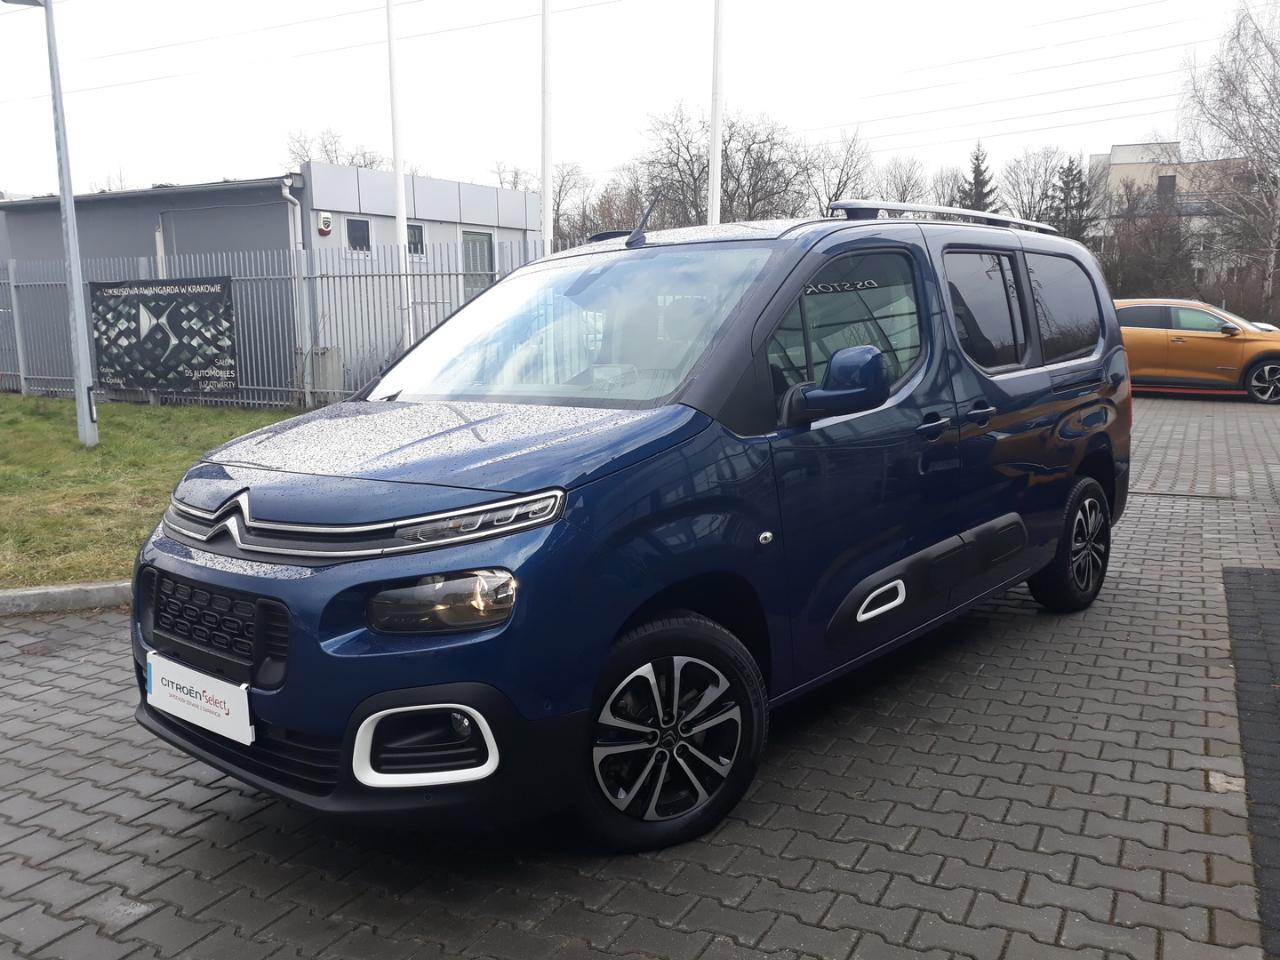 Citroën Berlingo XL 1.5 BlueHDI Shine